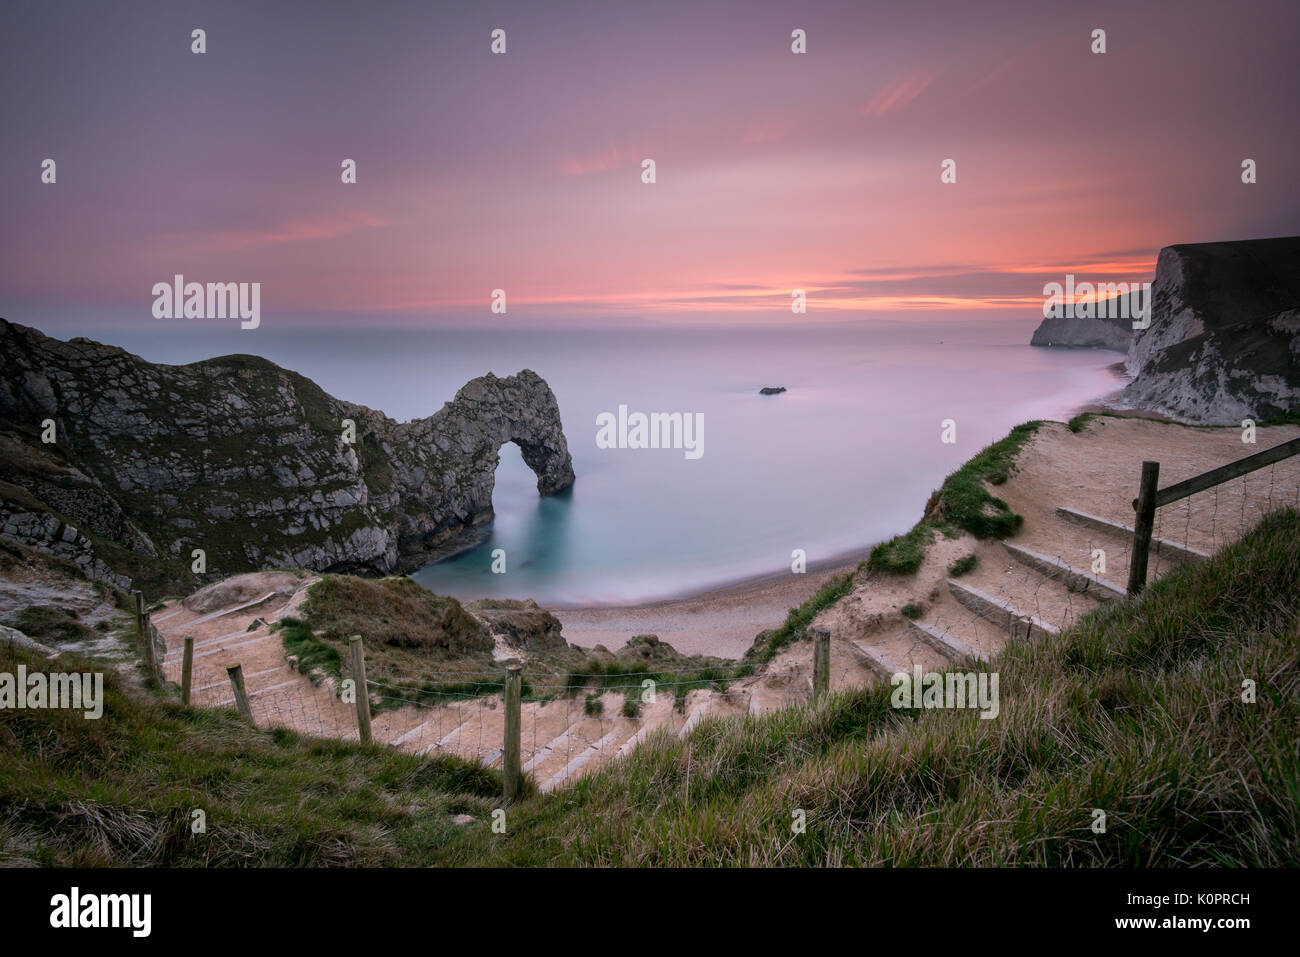 A dramatic magenta sunset on a summers evening at Durdle Door on the Jurassic Coast in Dorset, a World Heritage Site taken with a long exposure - Stock Image